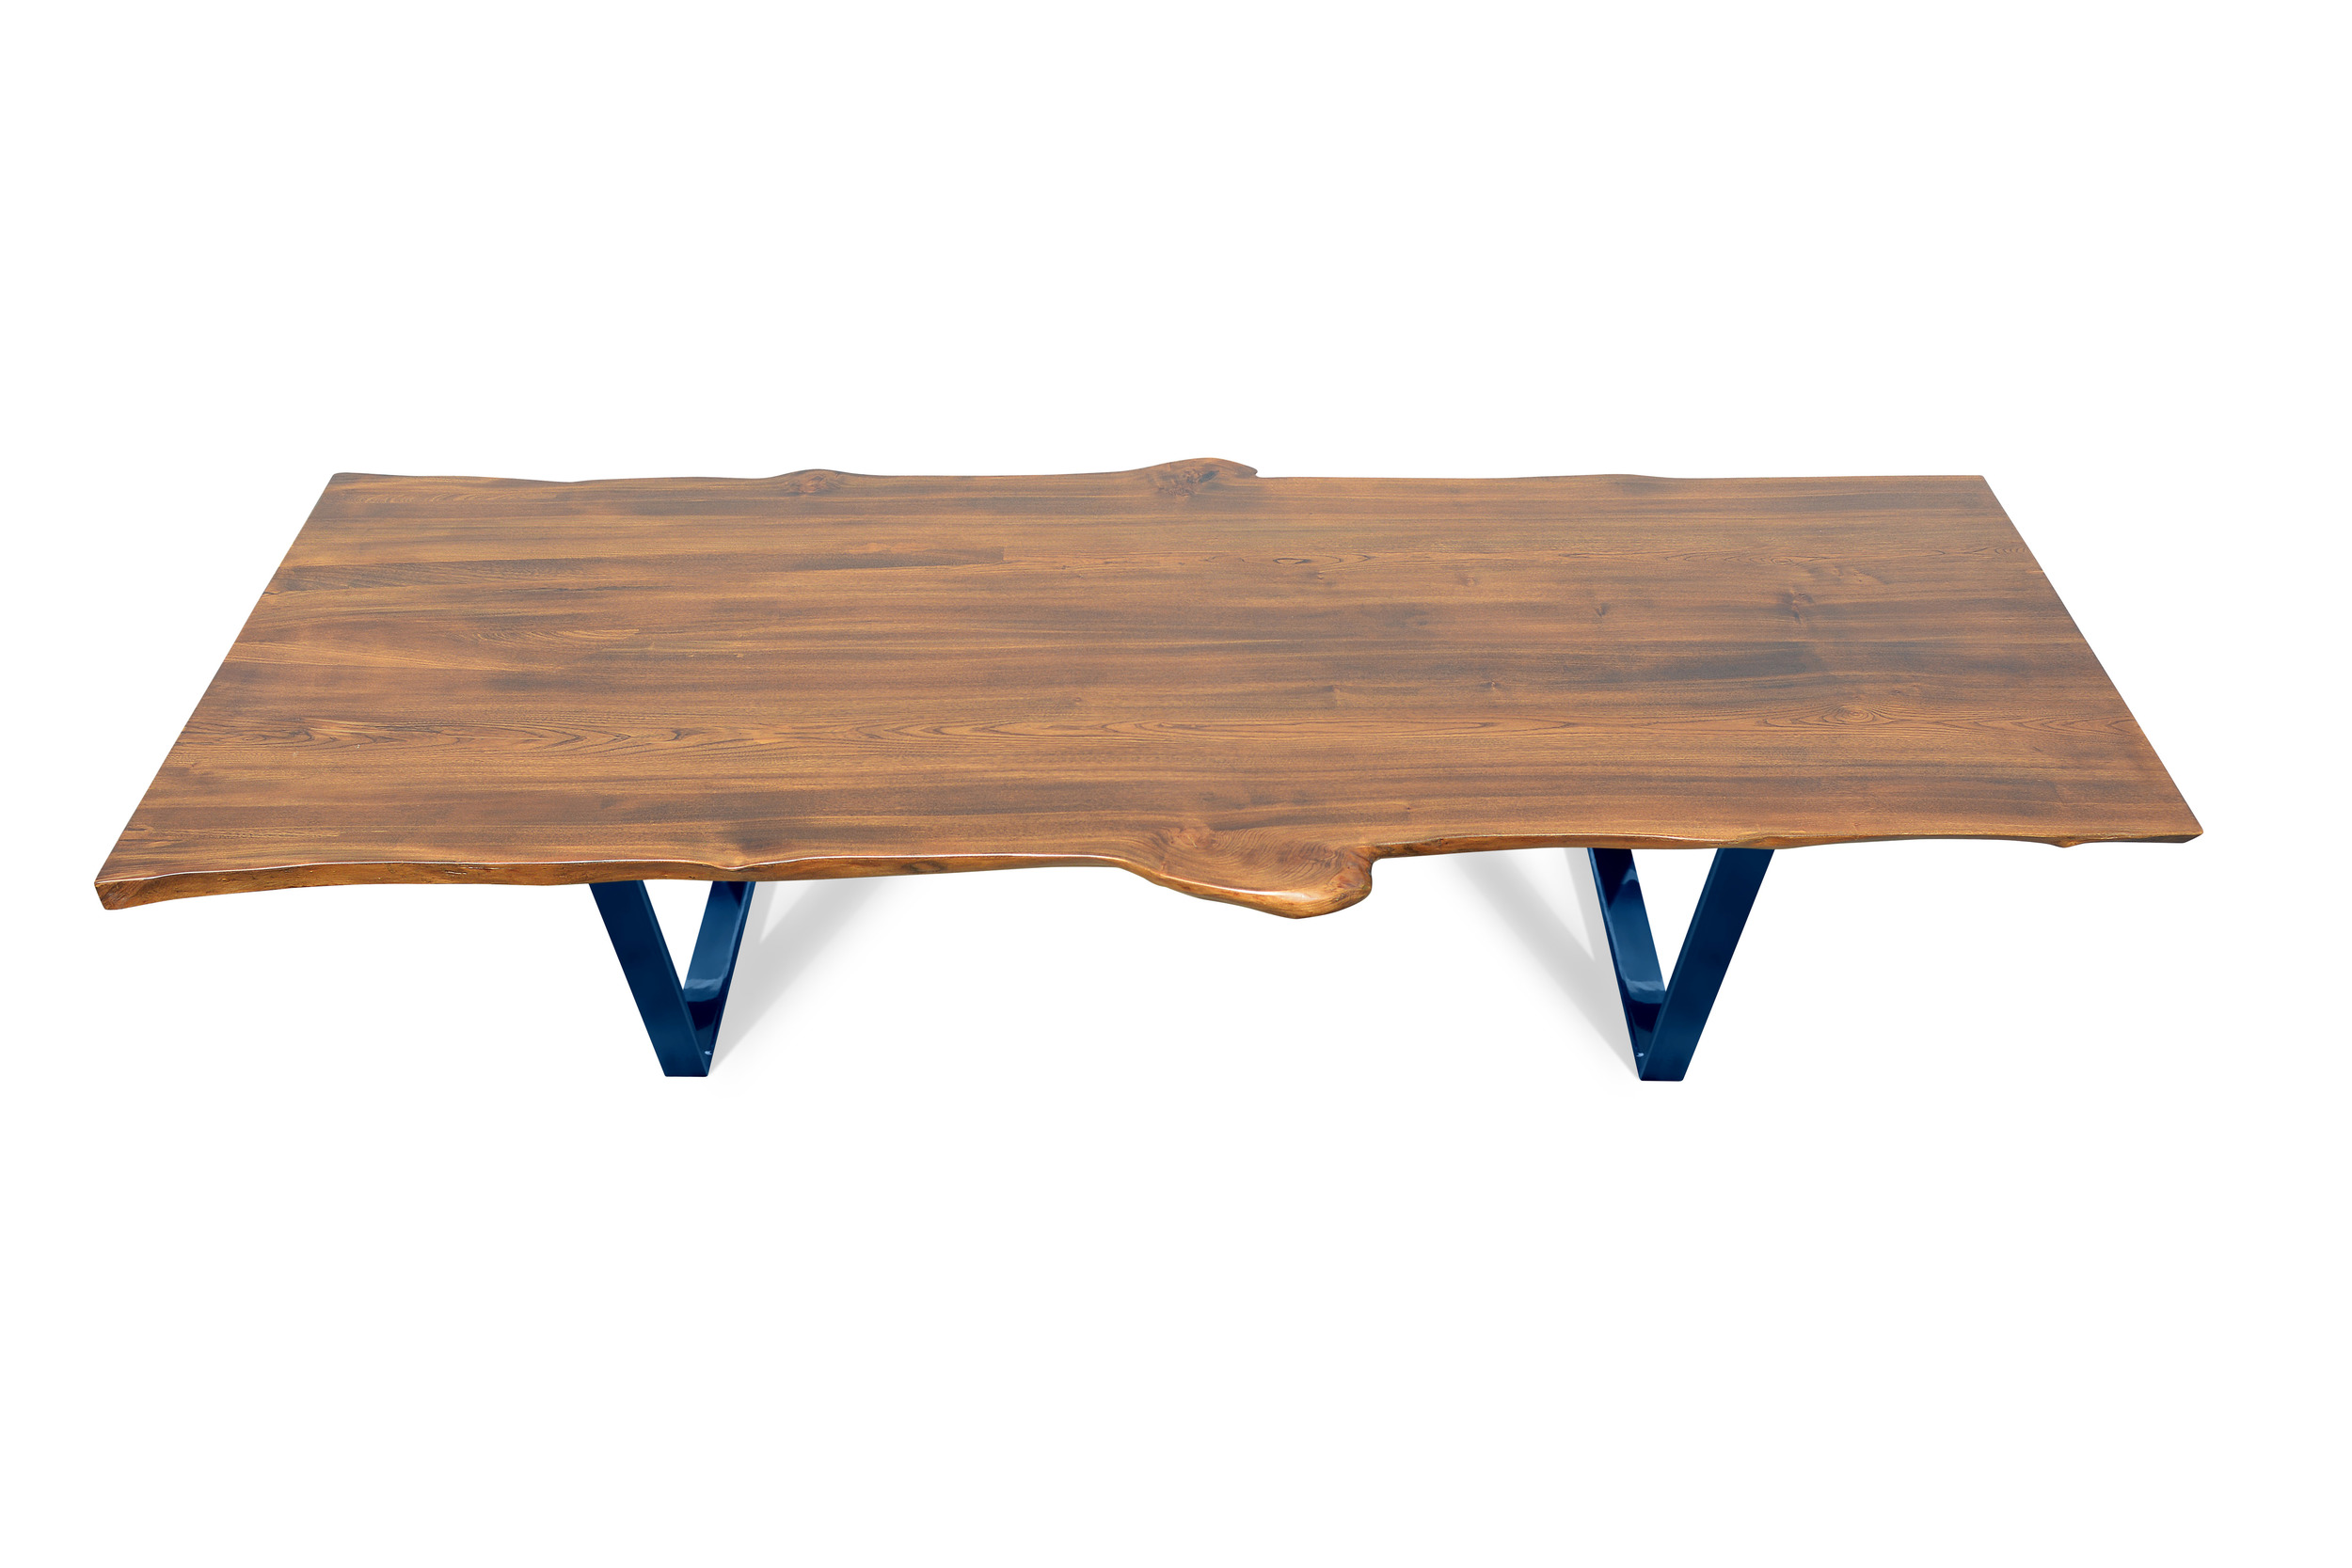 Etz & Steel Live Edge Cognac Table Midnight Navy Blue Base 1.jpg